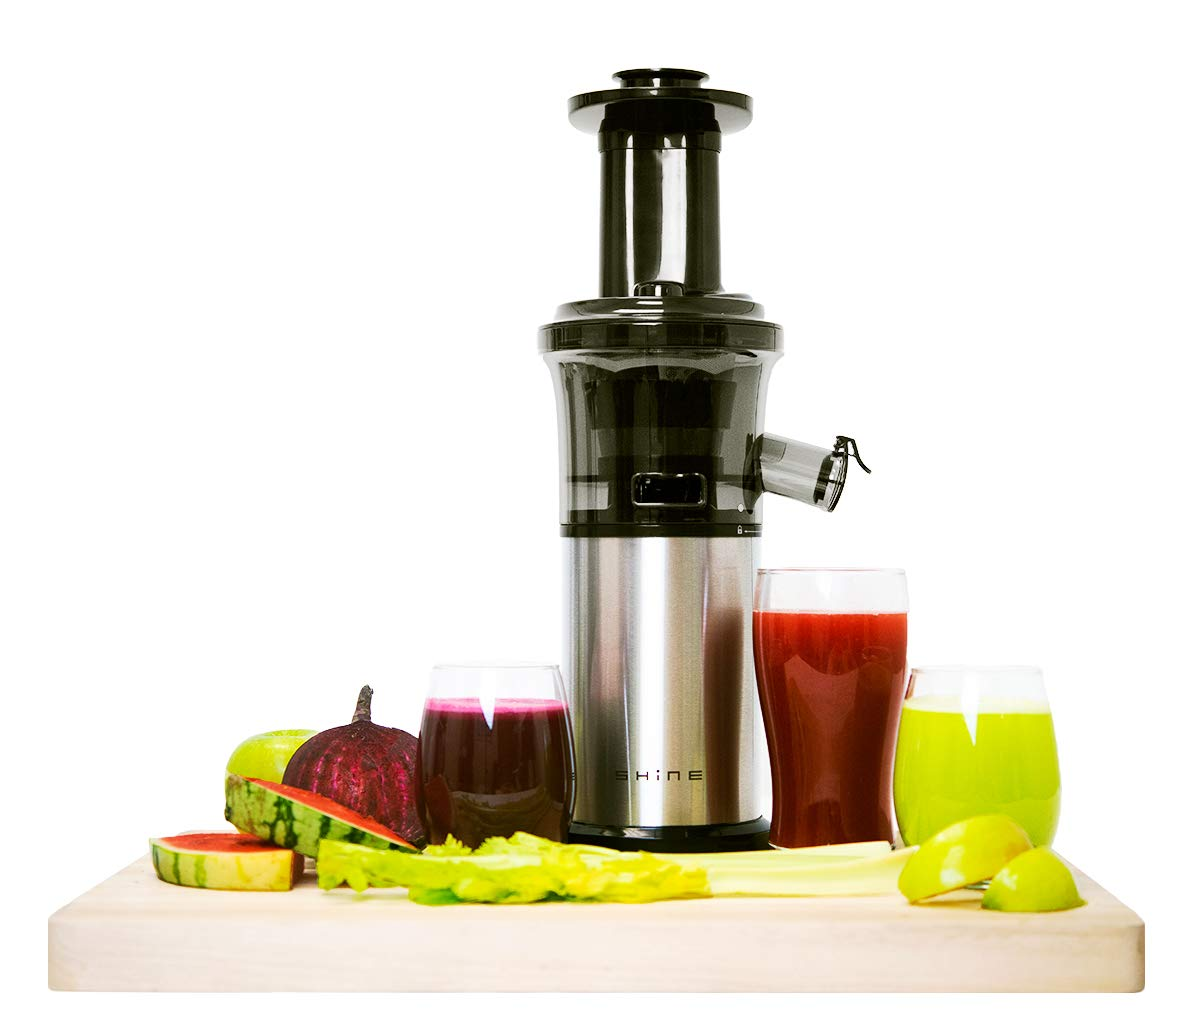 Vertical slow juicer sjv 107 a cold press masticating juice extractor silver and black kitchen dining